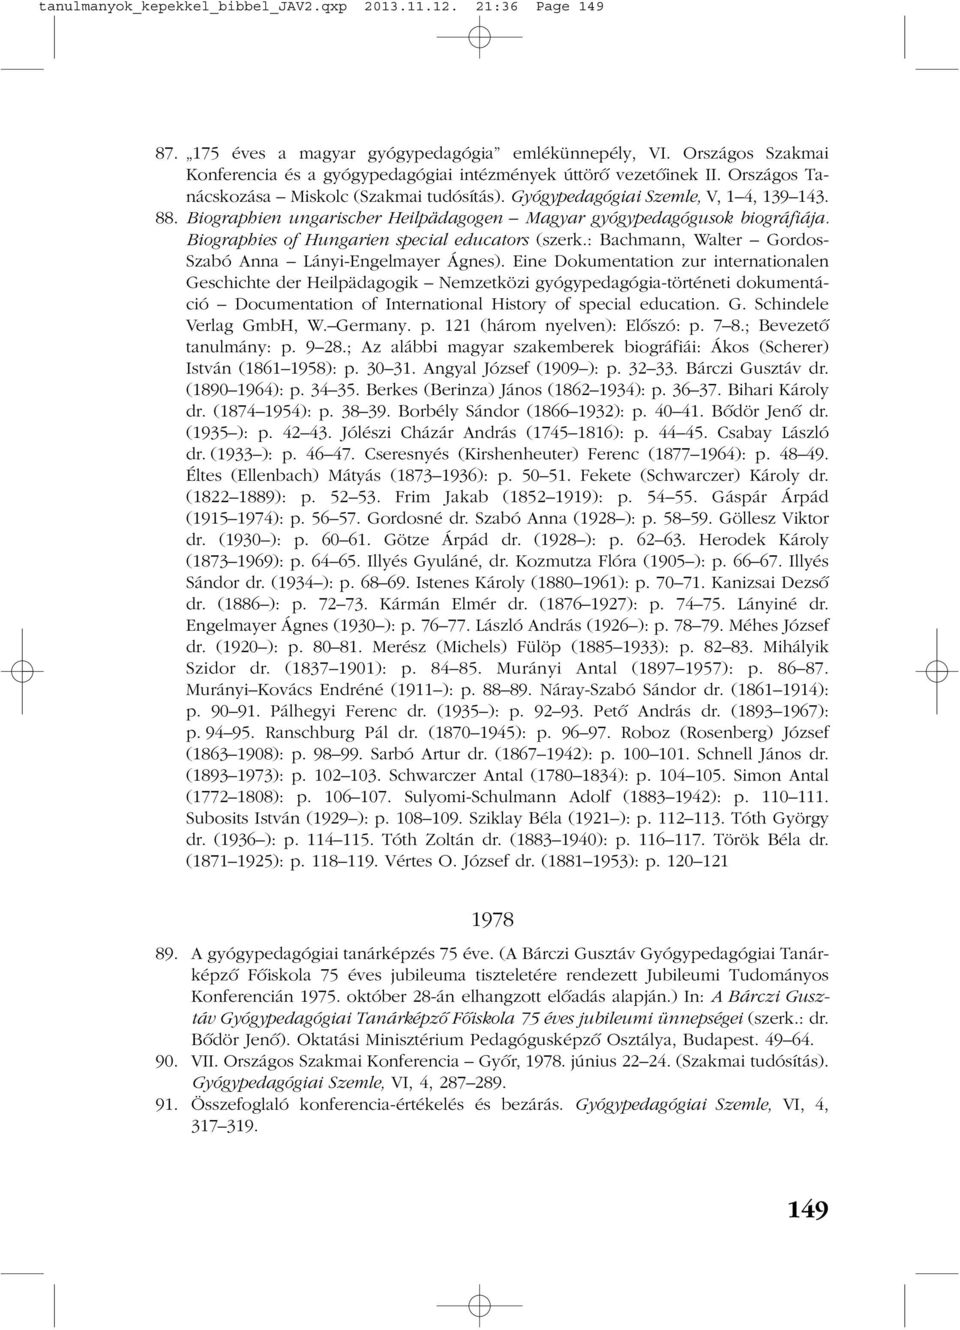 Biographien ungarischer Heilpädagogen Magyar gyógypedagógusok biográfiája. Biographies of Hungarien special educators (szerk.: Bachmann, Walter Gordos- Szabó Anna Lányi-Engelmayer Ágnes).